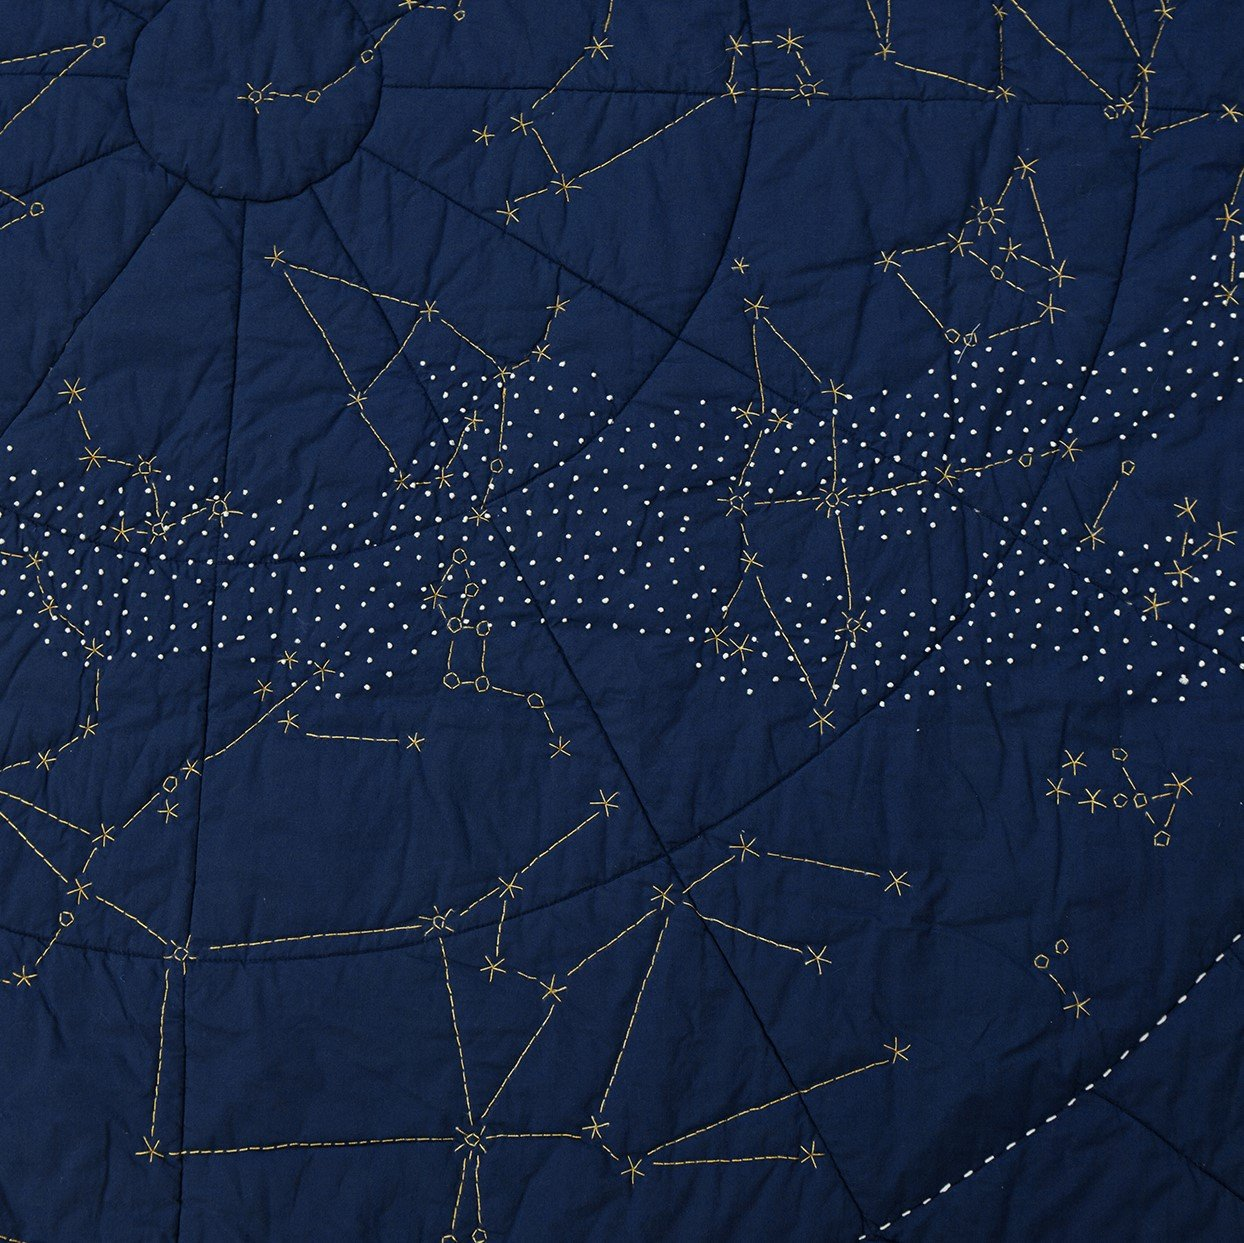 Organic Constellation Quilt - Navy Celestial